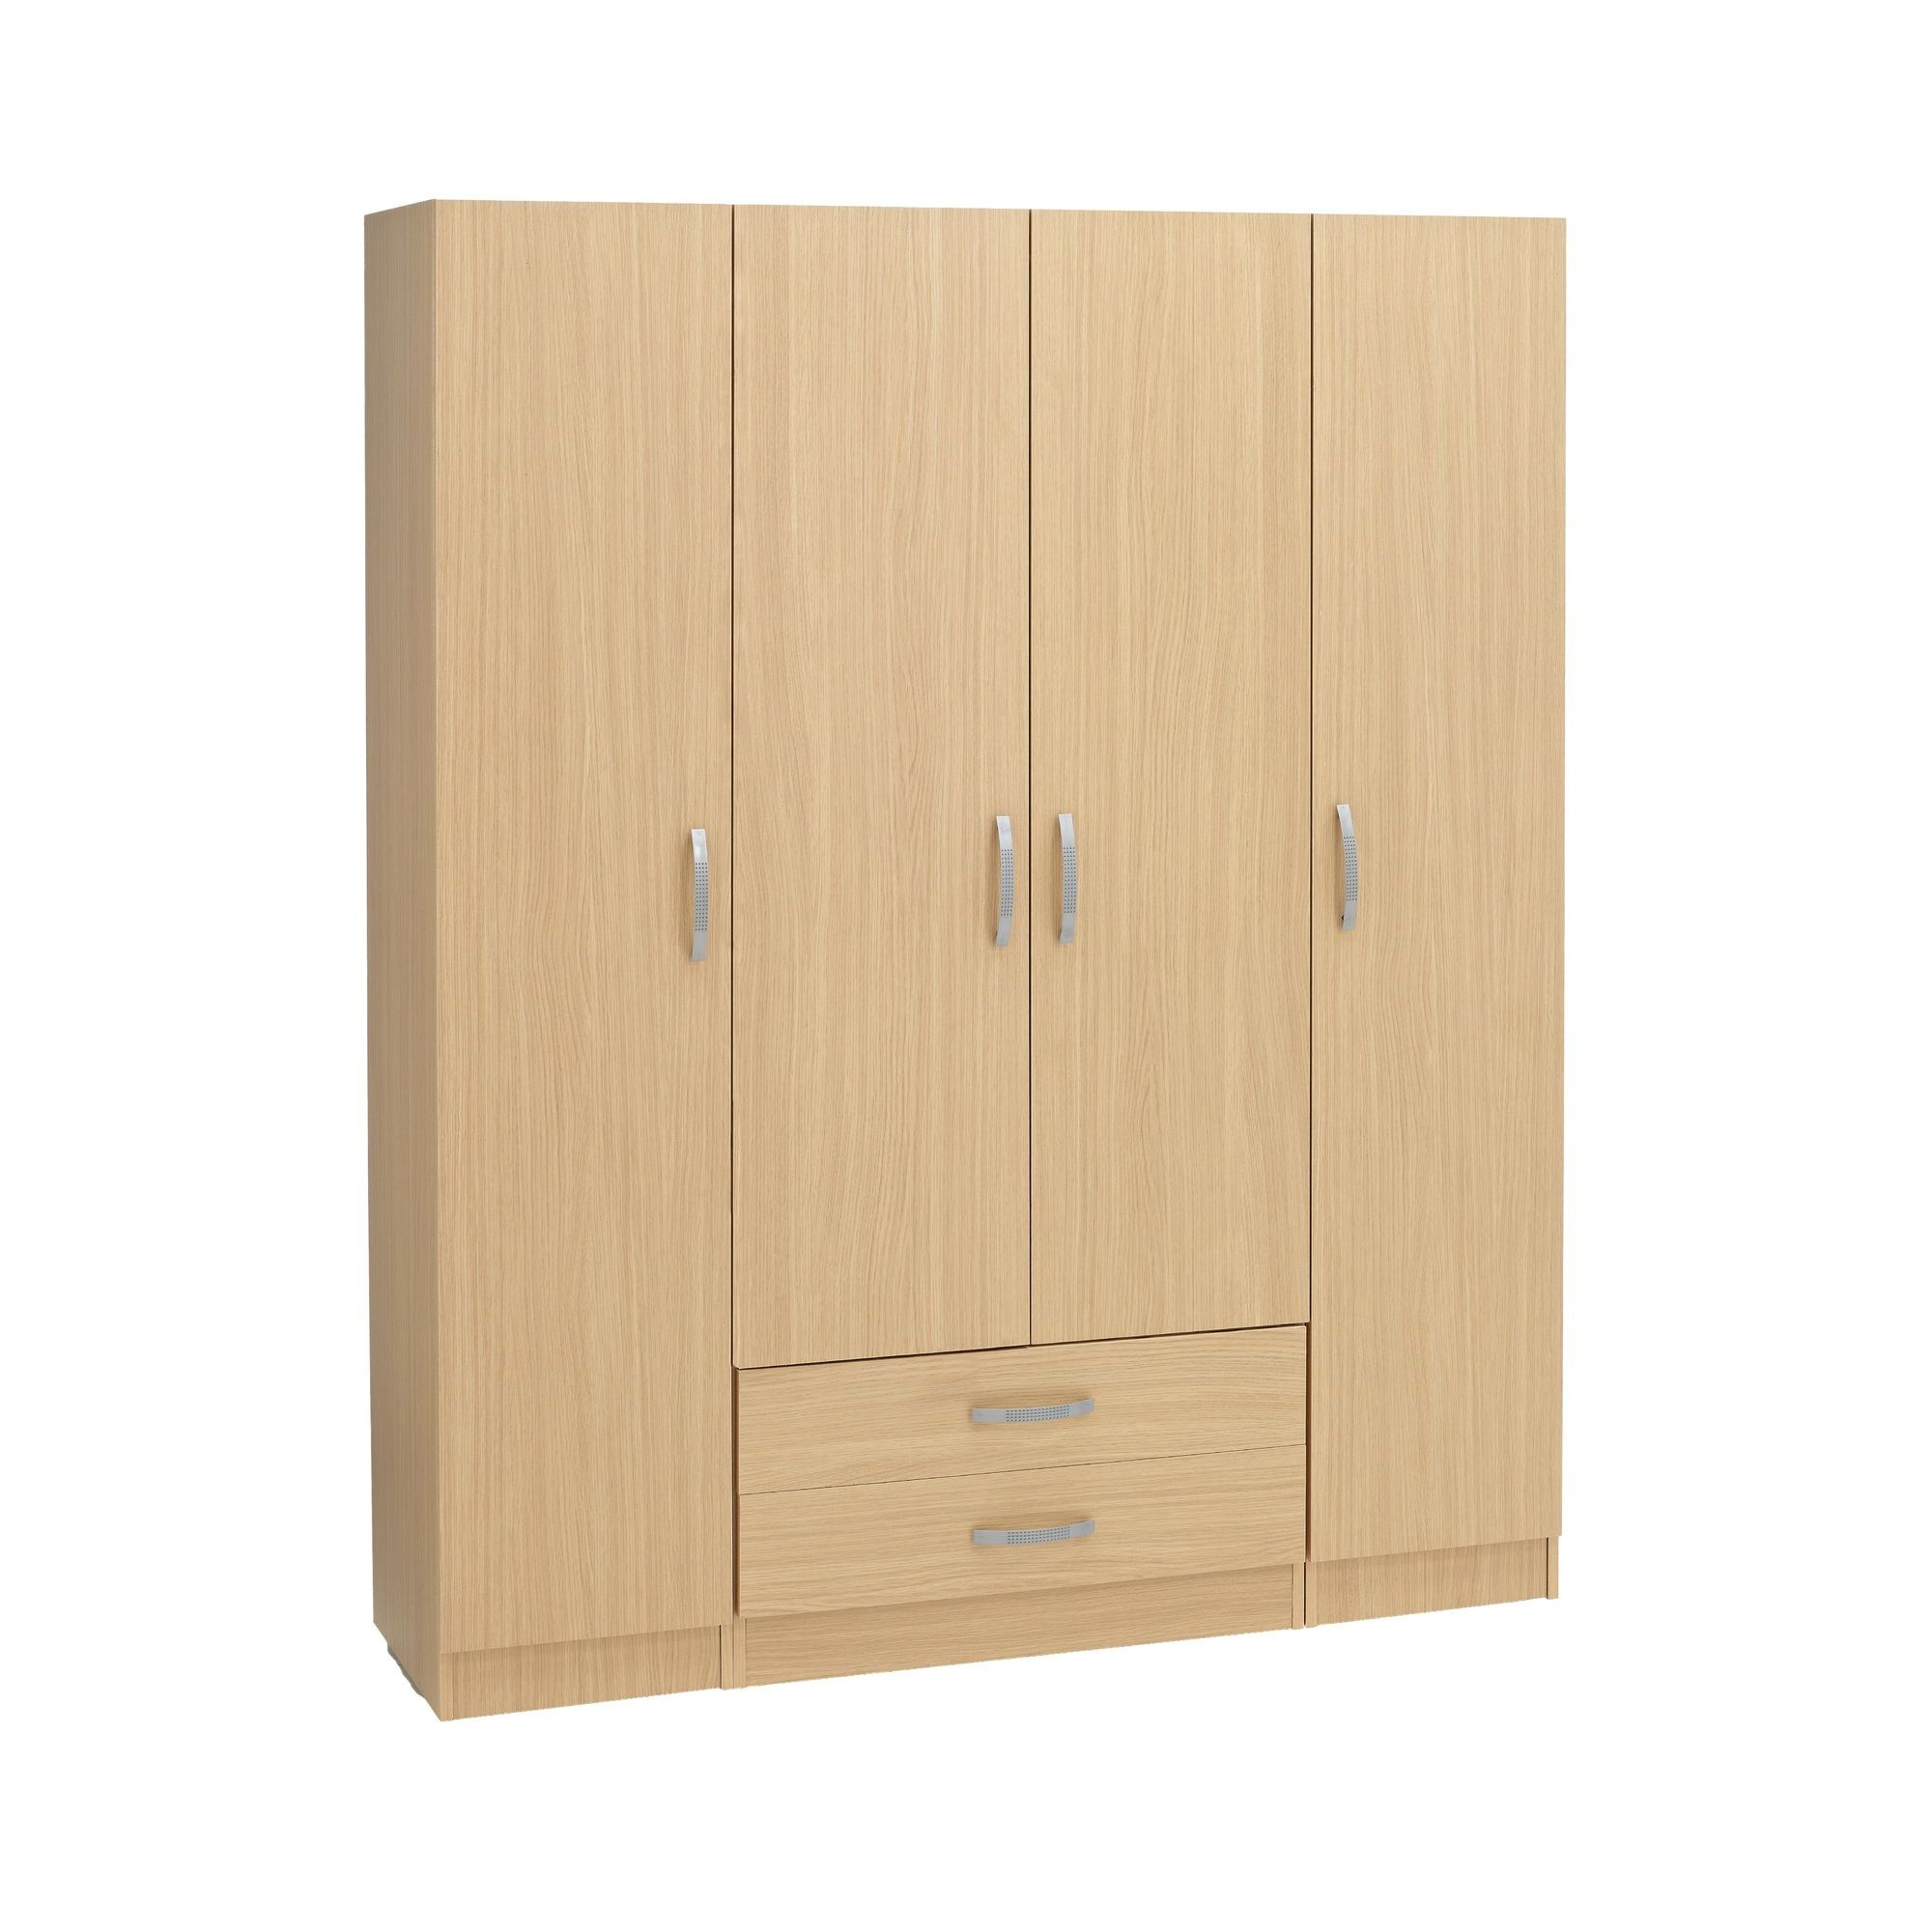 Ideal Furniture Budapest 4 Door Wardrobe - Oak at Tesco Direct